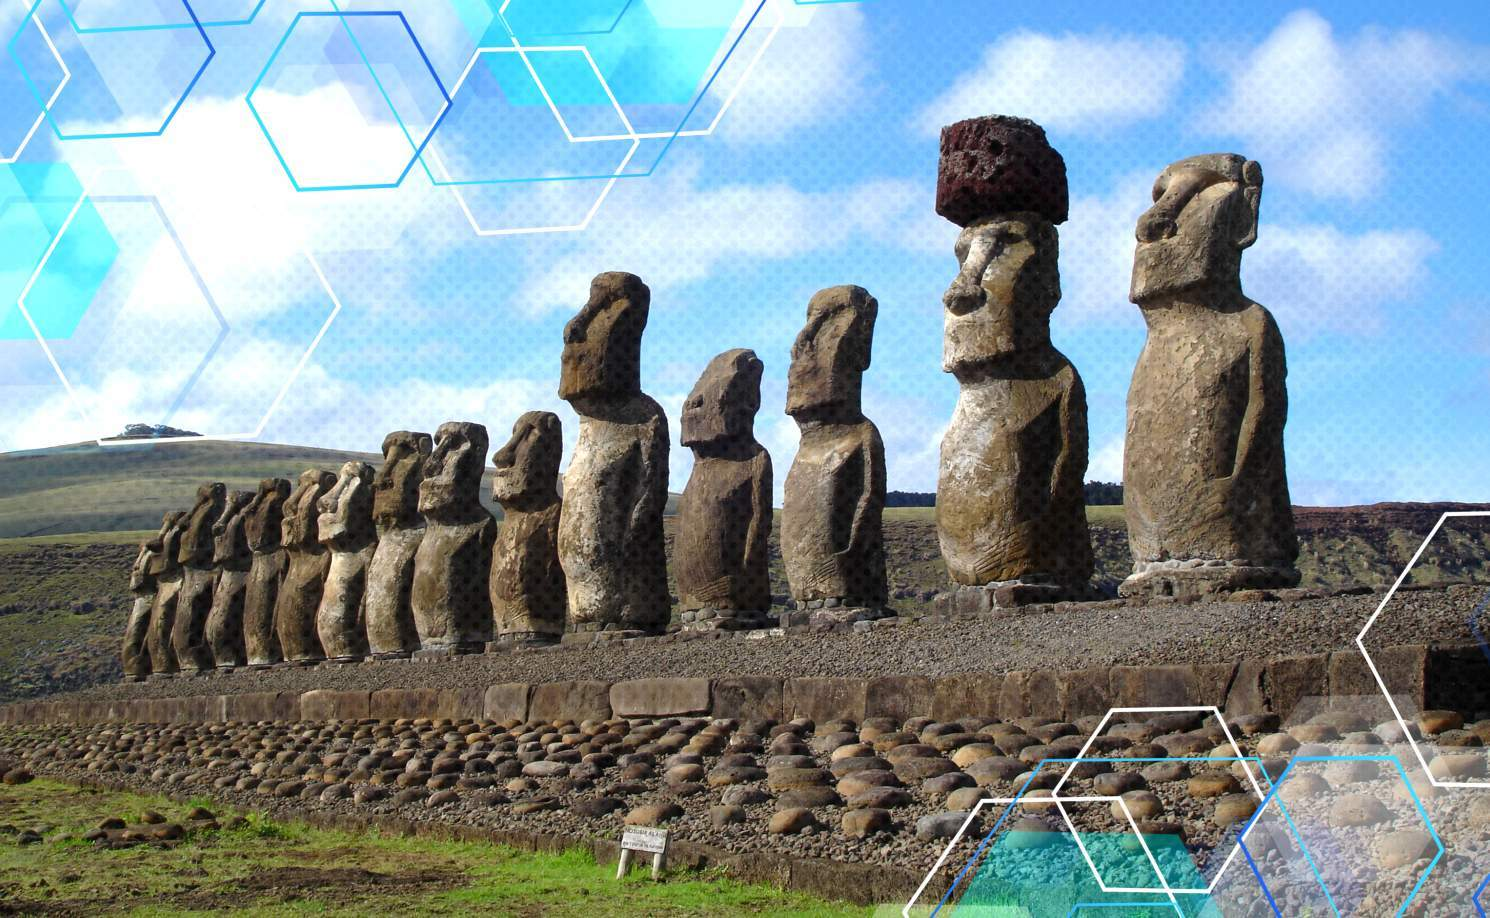 Easter island mystery: The origin of the Rapa Nui people 6